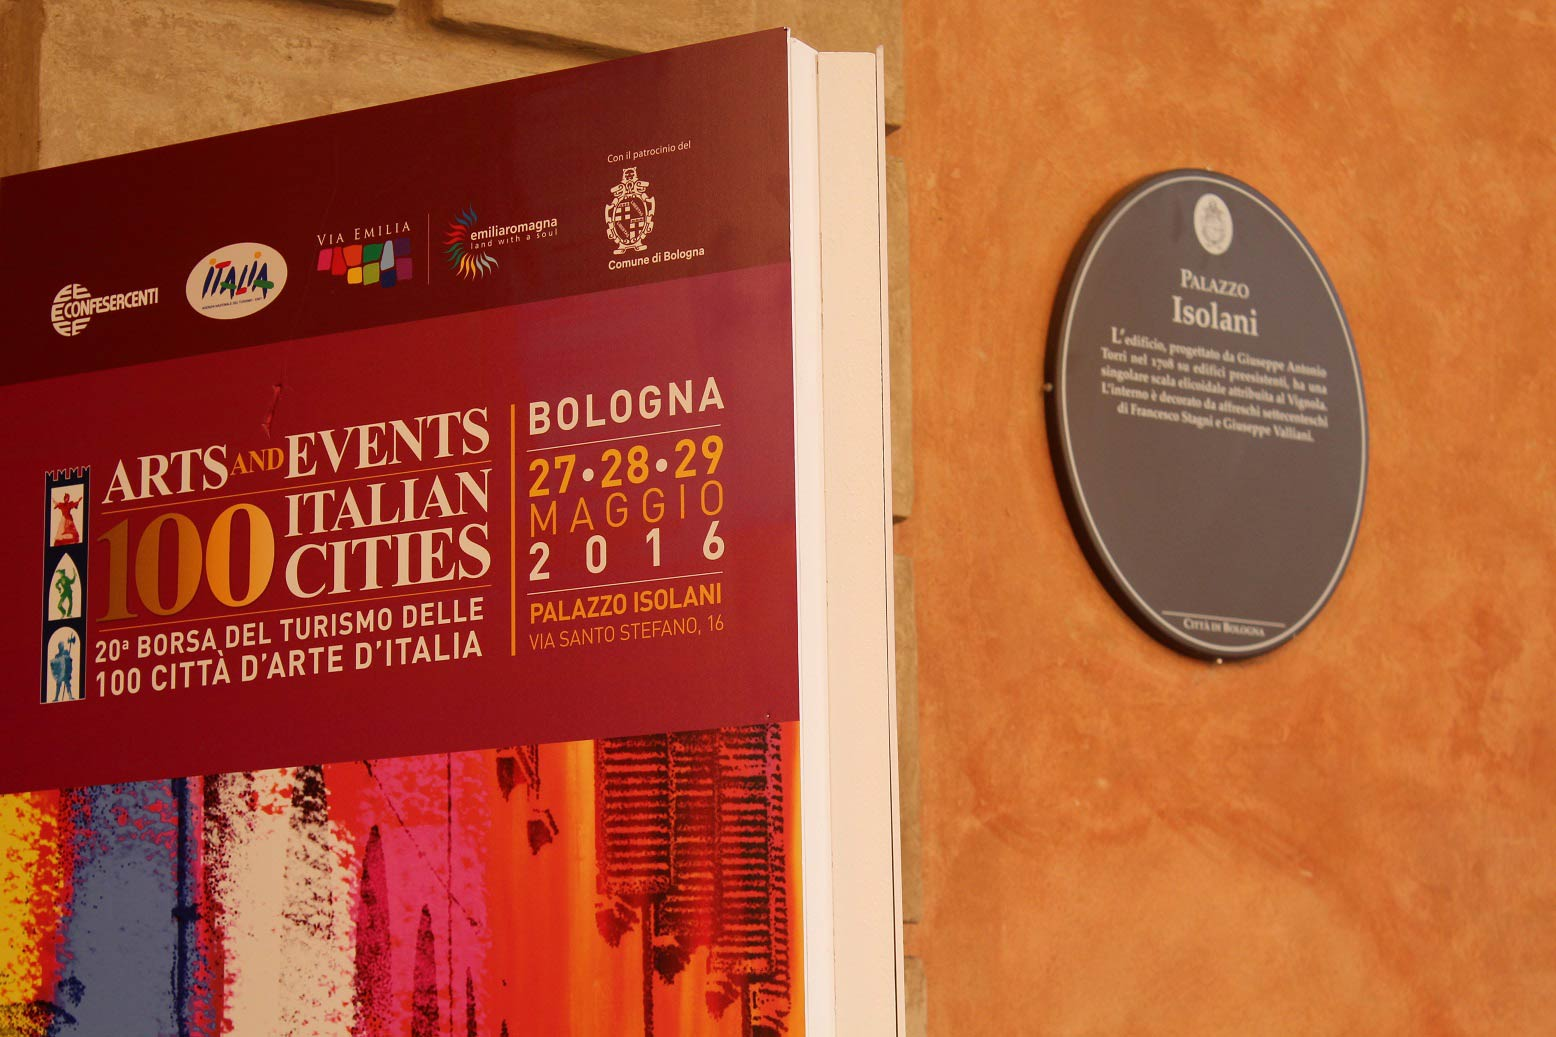 Arts and Events 100 Italian Cities